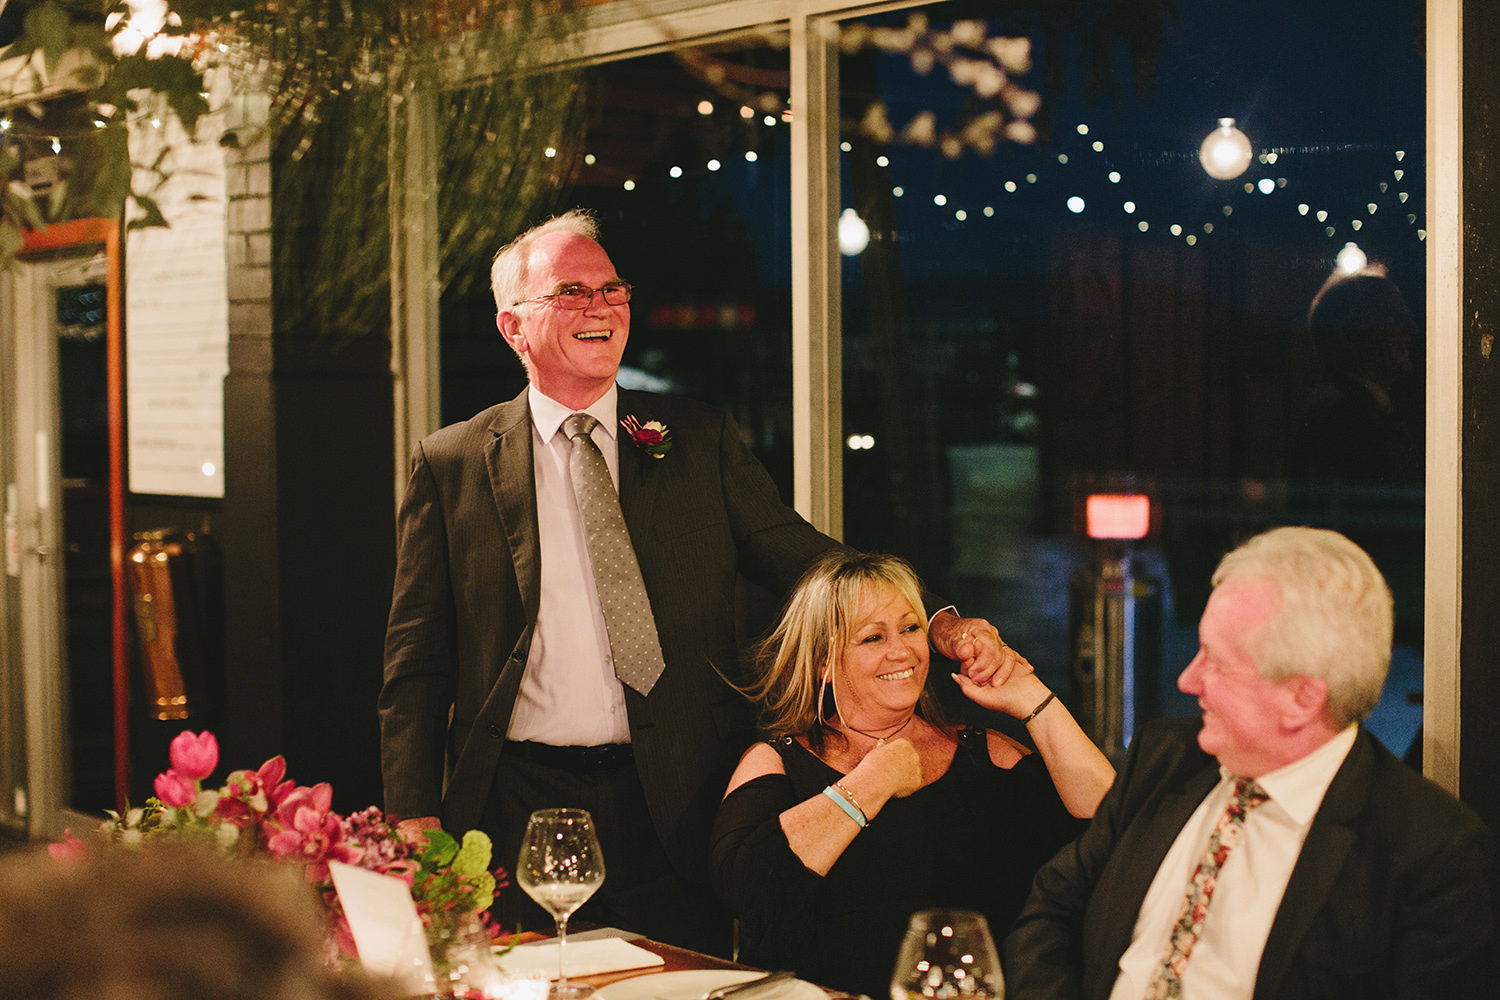 Melbourne_Winery_Wedding_Chris_Merrily169.JPG